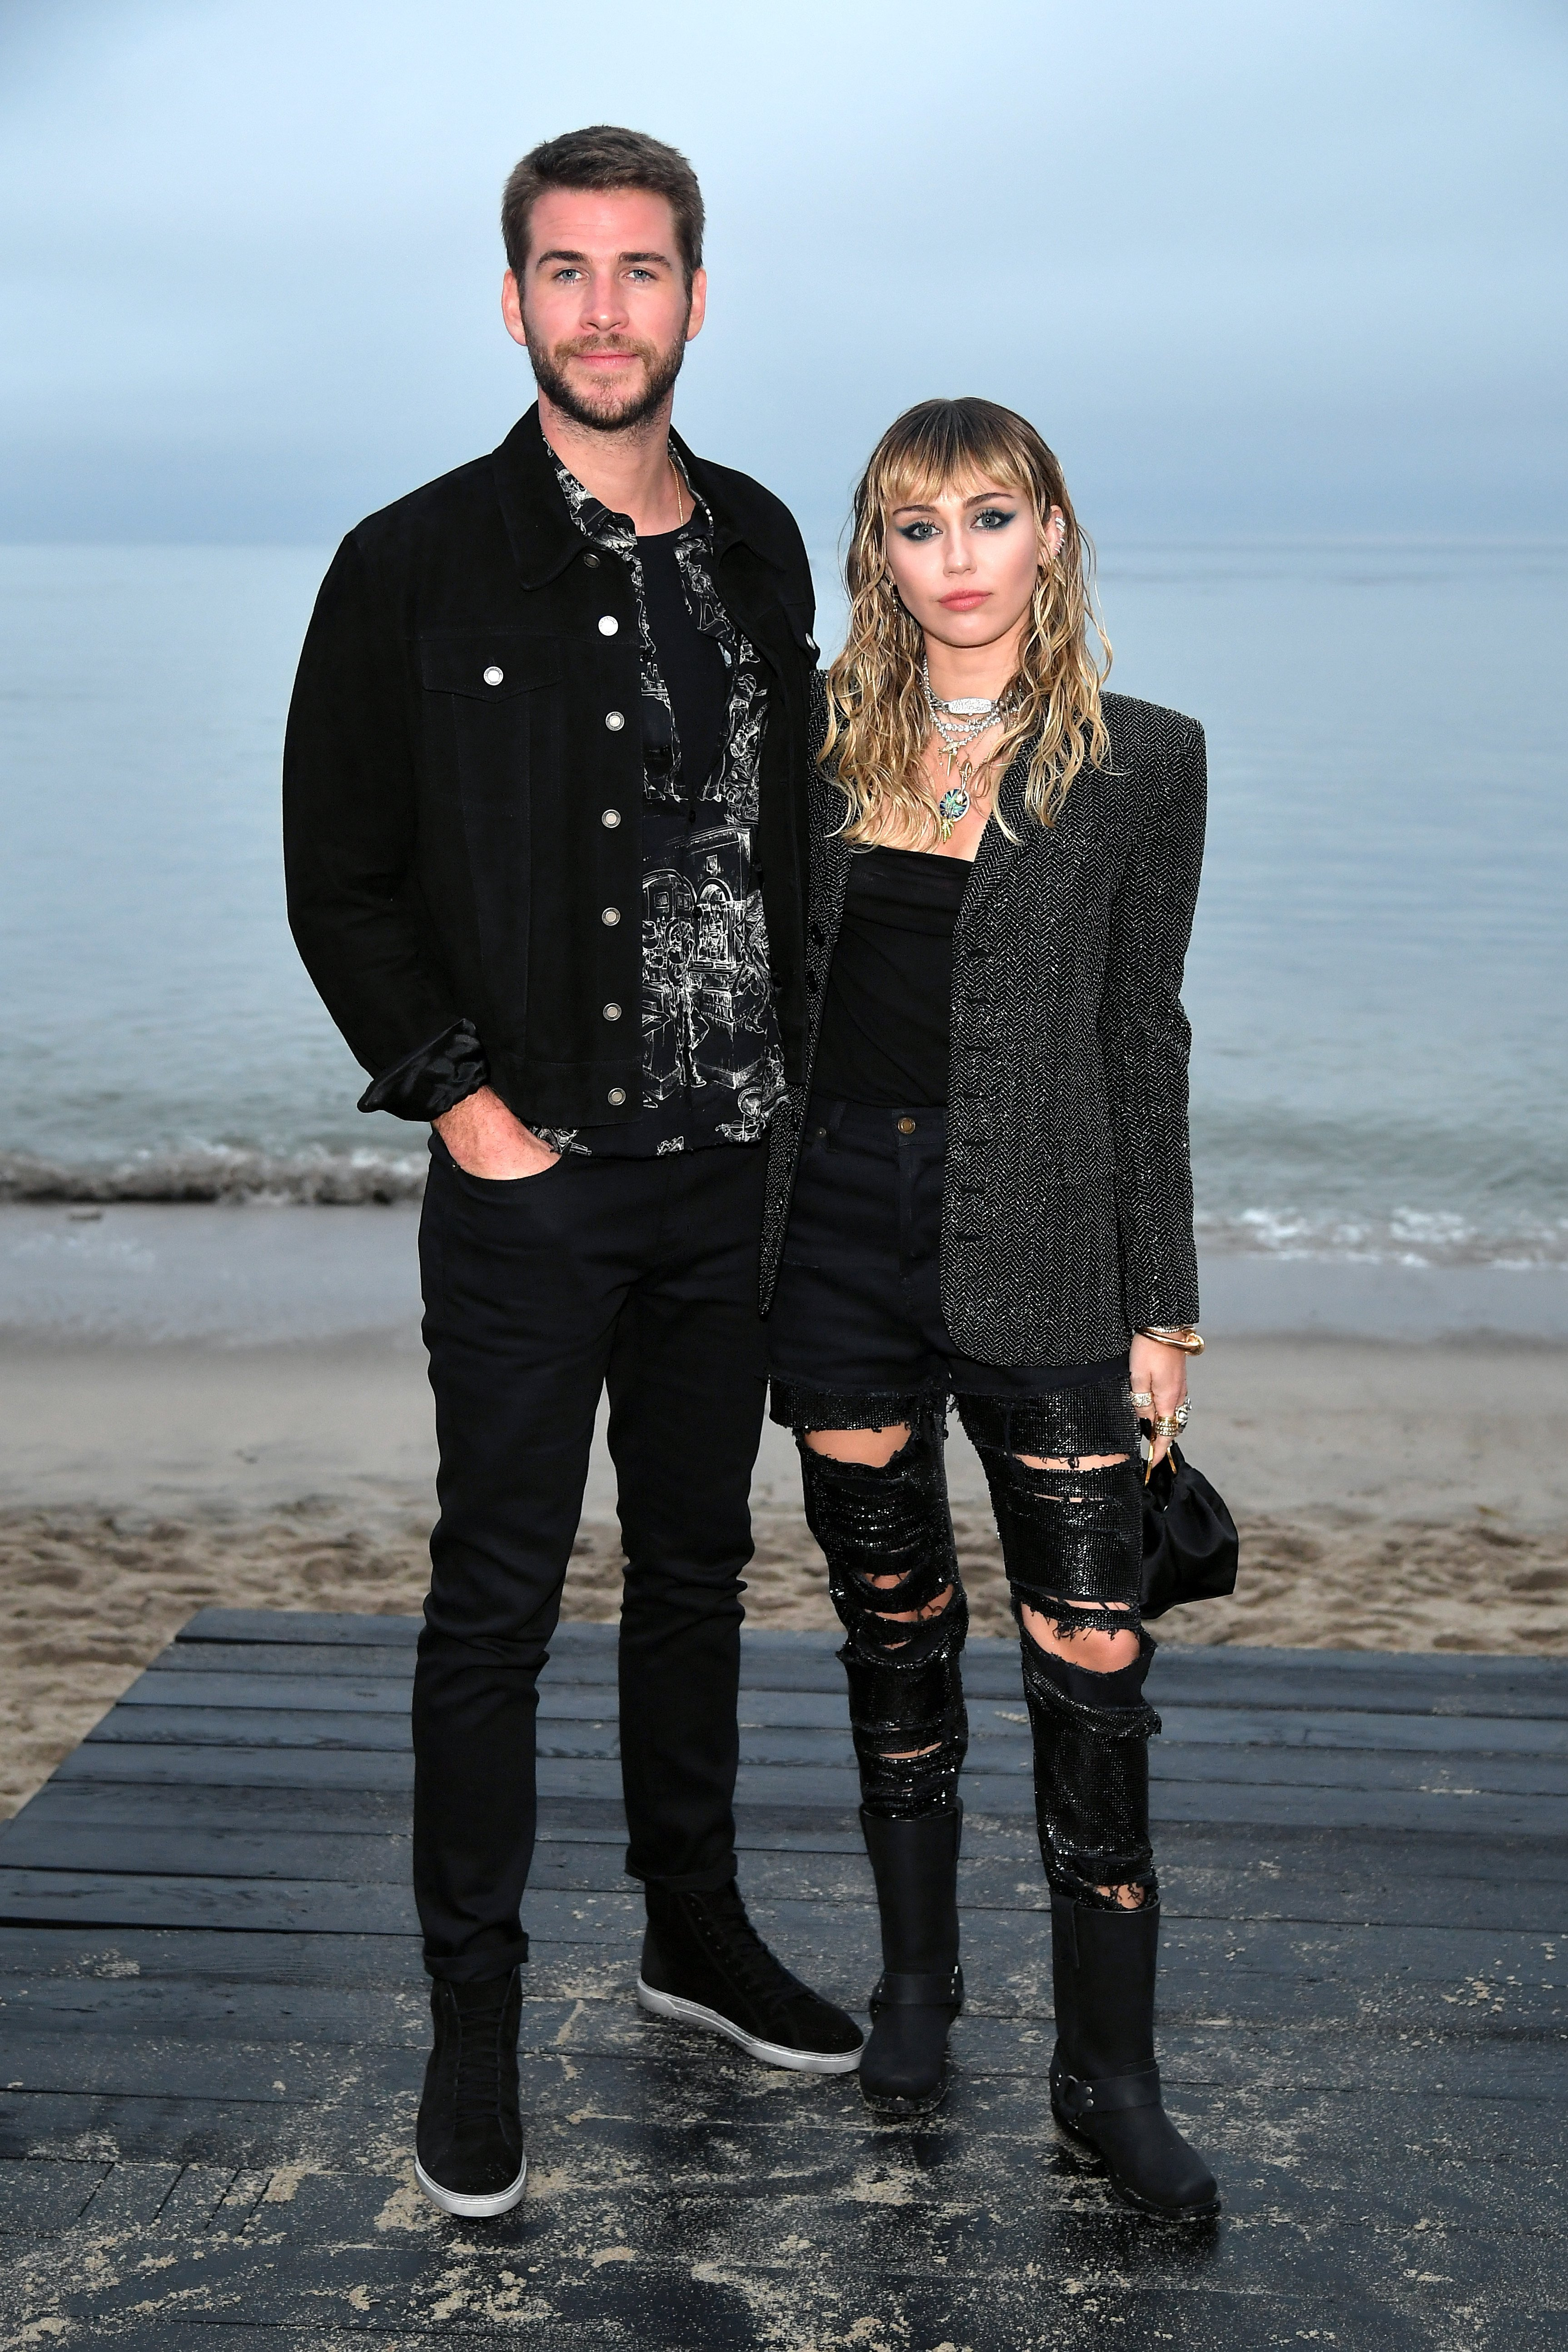 Liam Hemsworth and Miley Cyrus at the Saint Laurent Mens Spring Summer 20 Show on June 06, 2019 in Paradise Cove Malibu, California | Photo: Getty Images